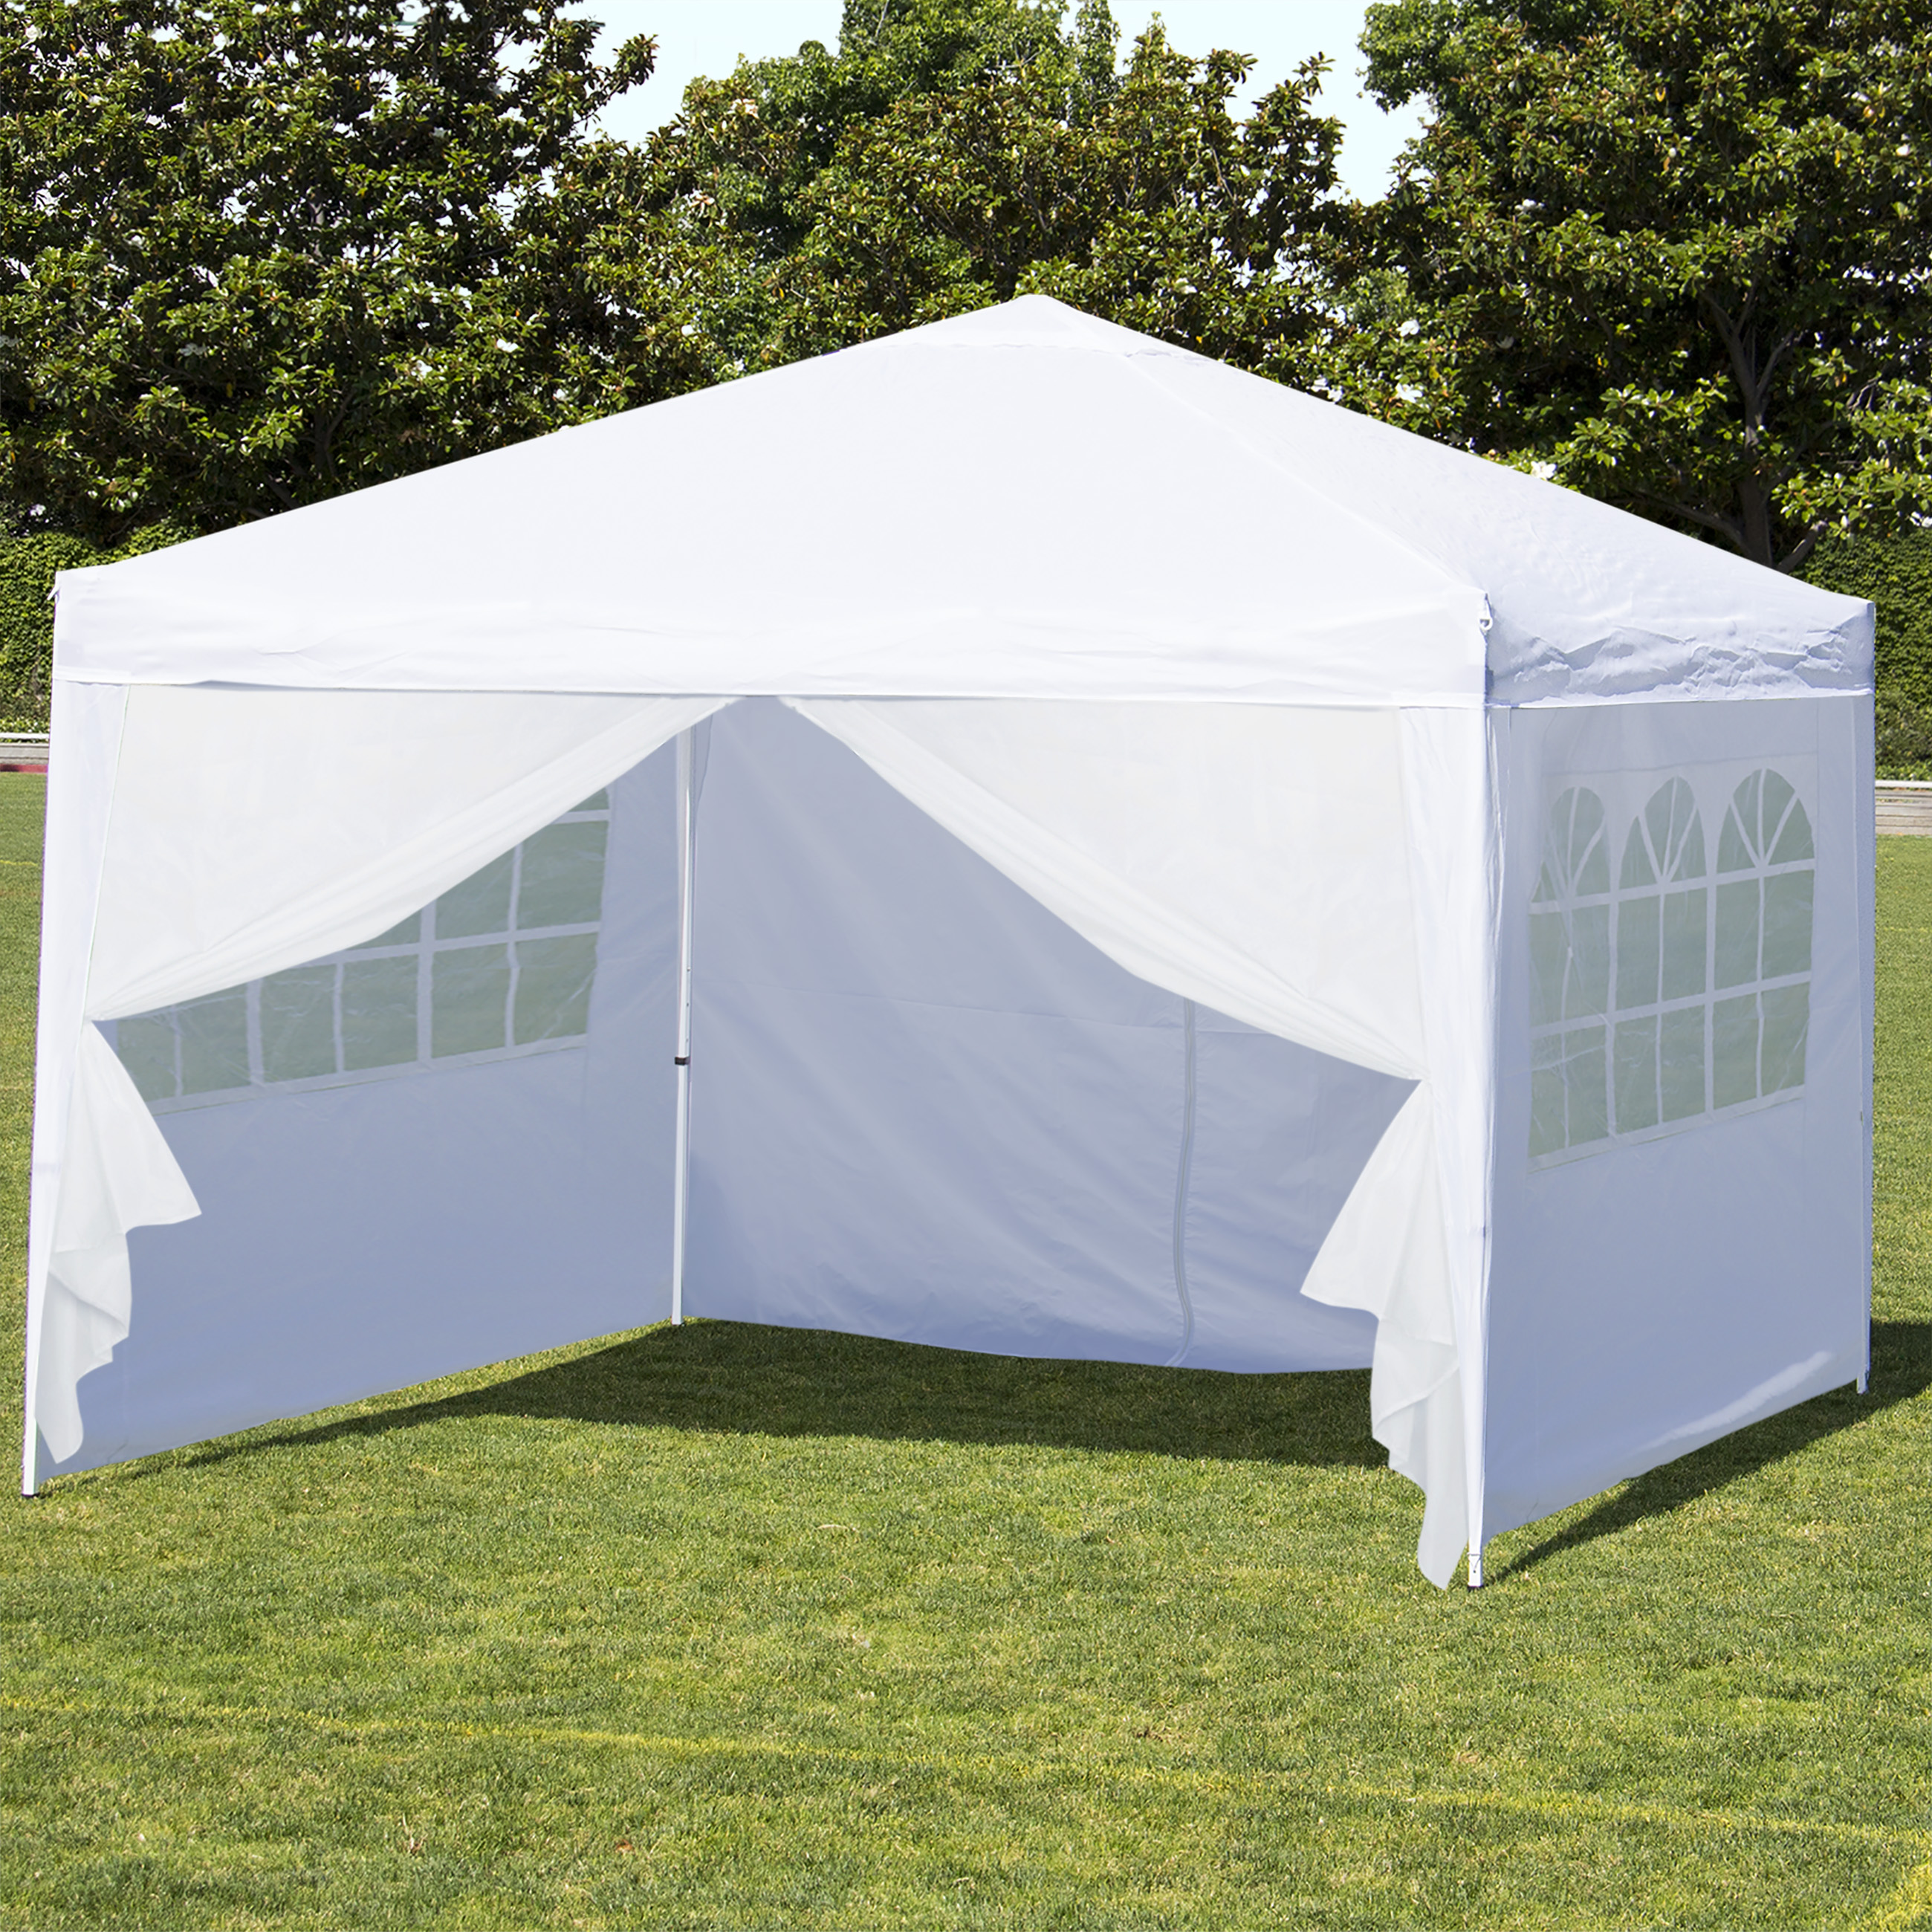 Best Choice Products 10u0027 x 10u0027 EZ Pop Up Canopy Tent Side Walls u0026 Carrying Bag - Walmart.com & Best Choice Products 10u0027 x 10u0027 EZ Pop Up Canopy Tent Side Walls ...